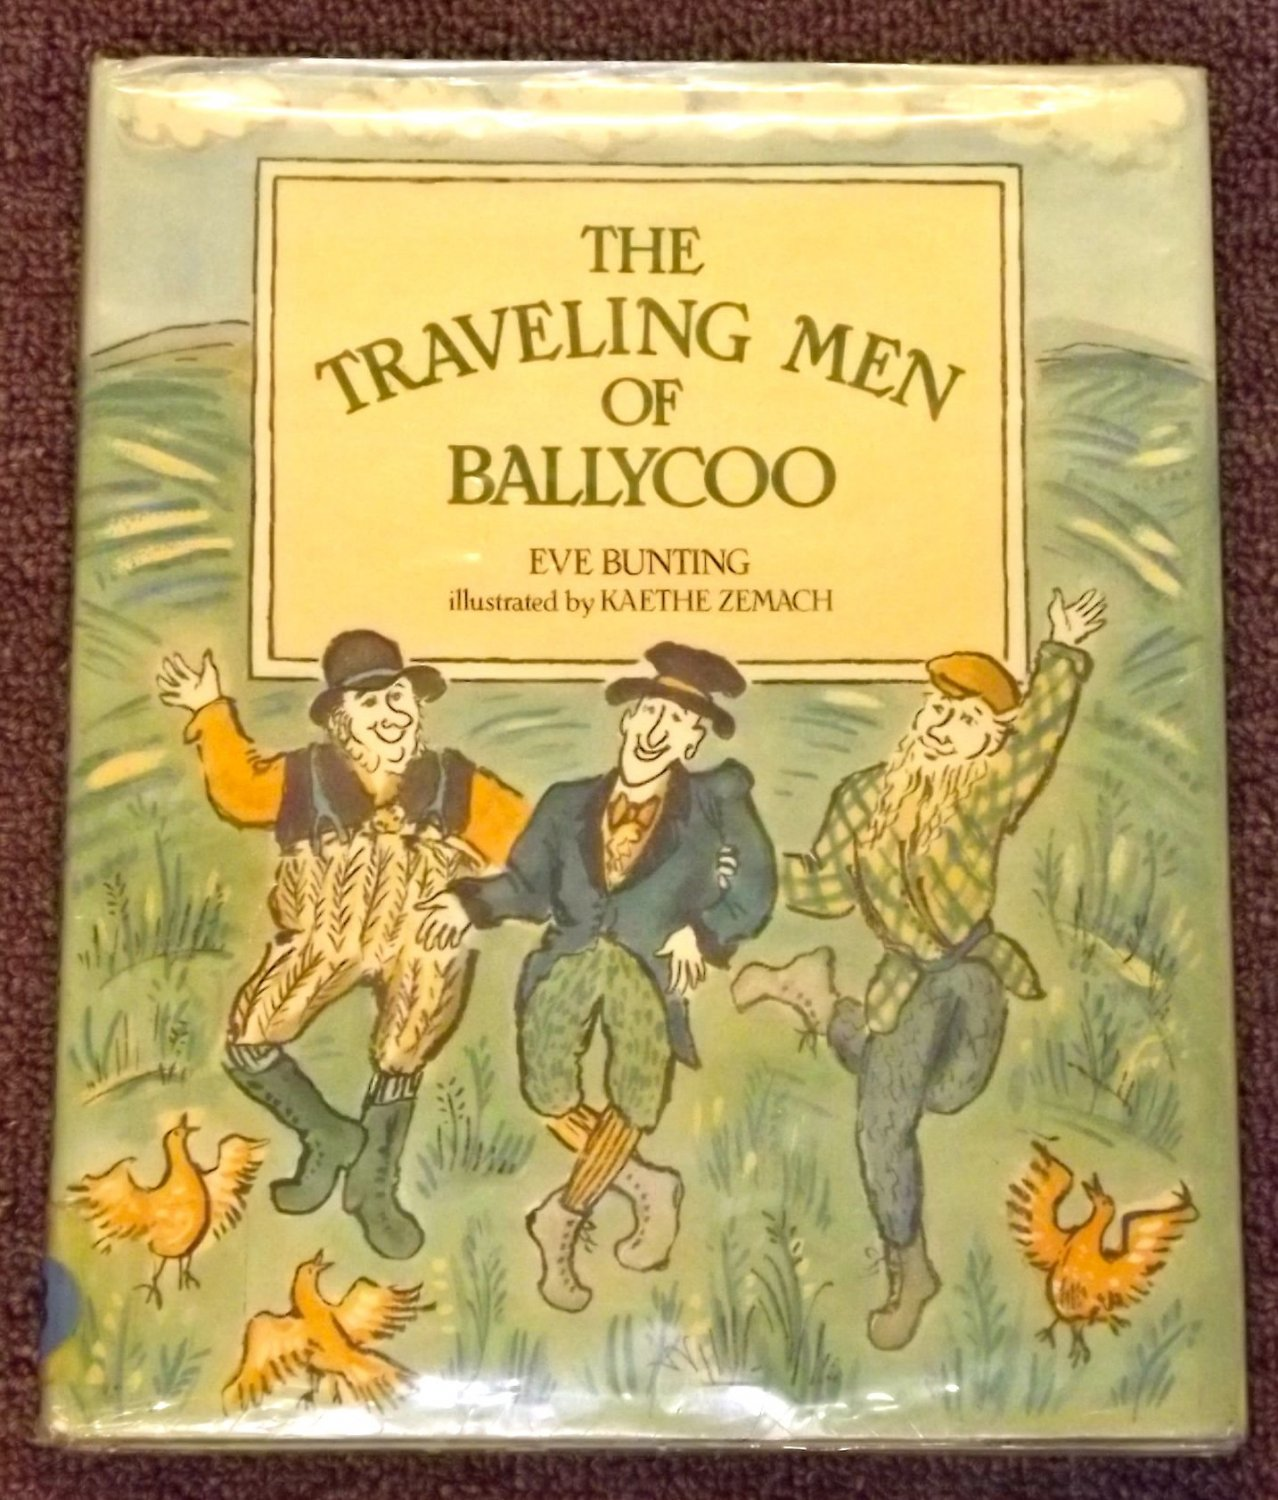 The Traveling Men of Ballycoo by Eve Bunting and Kaethe Zemach